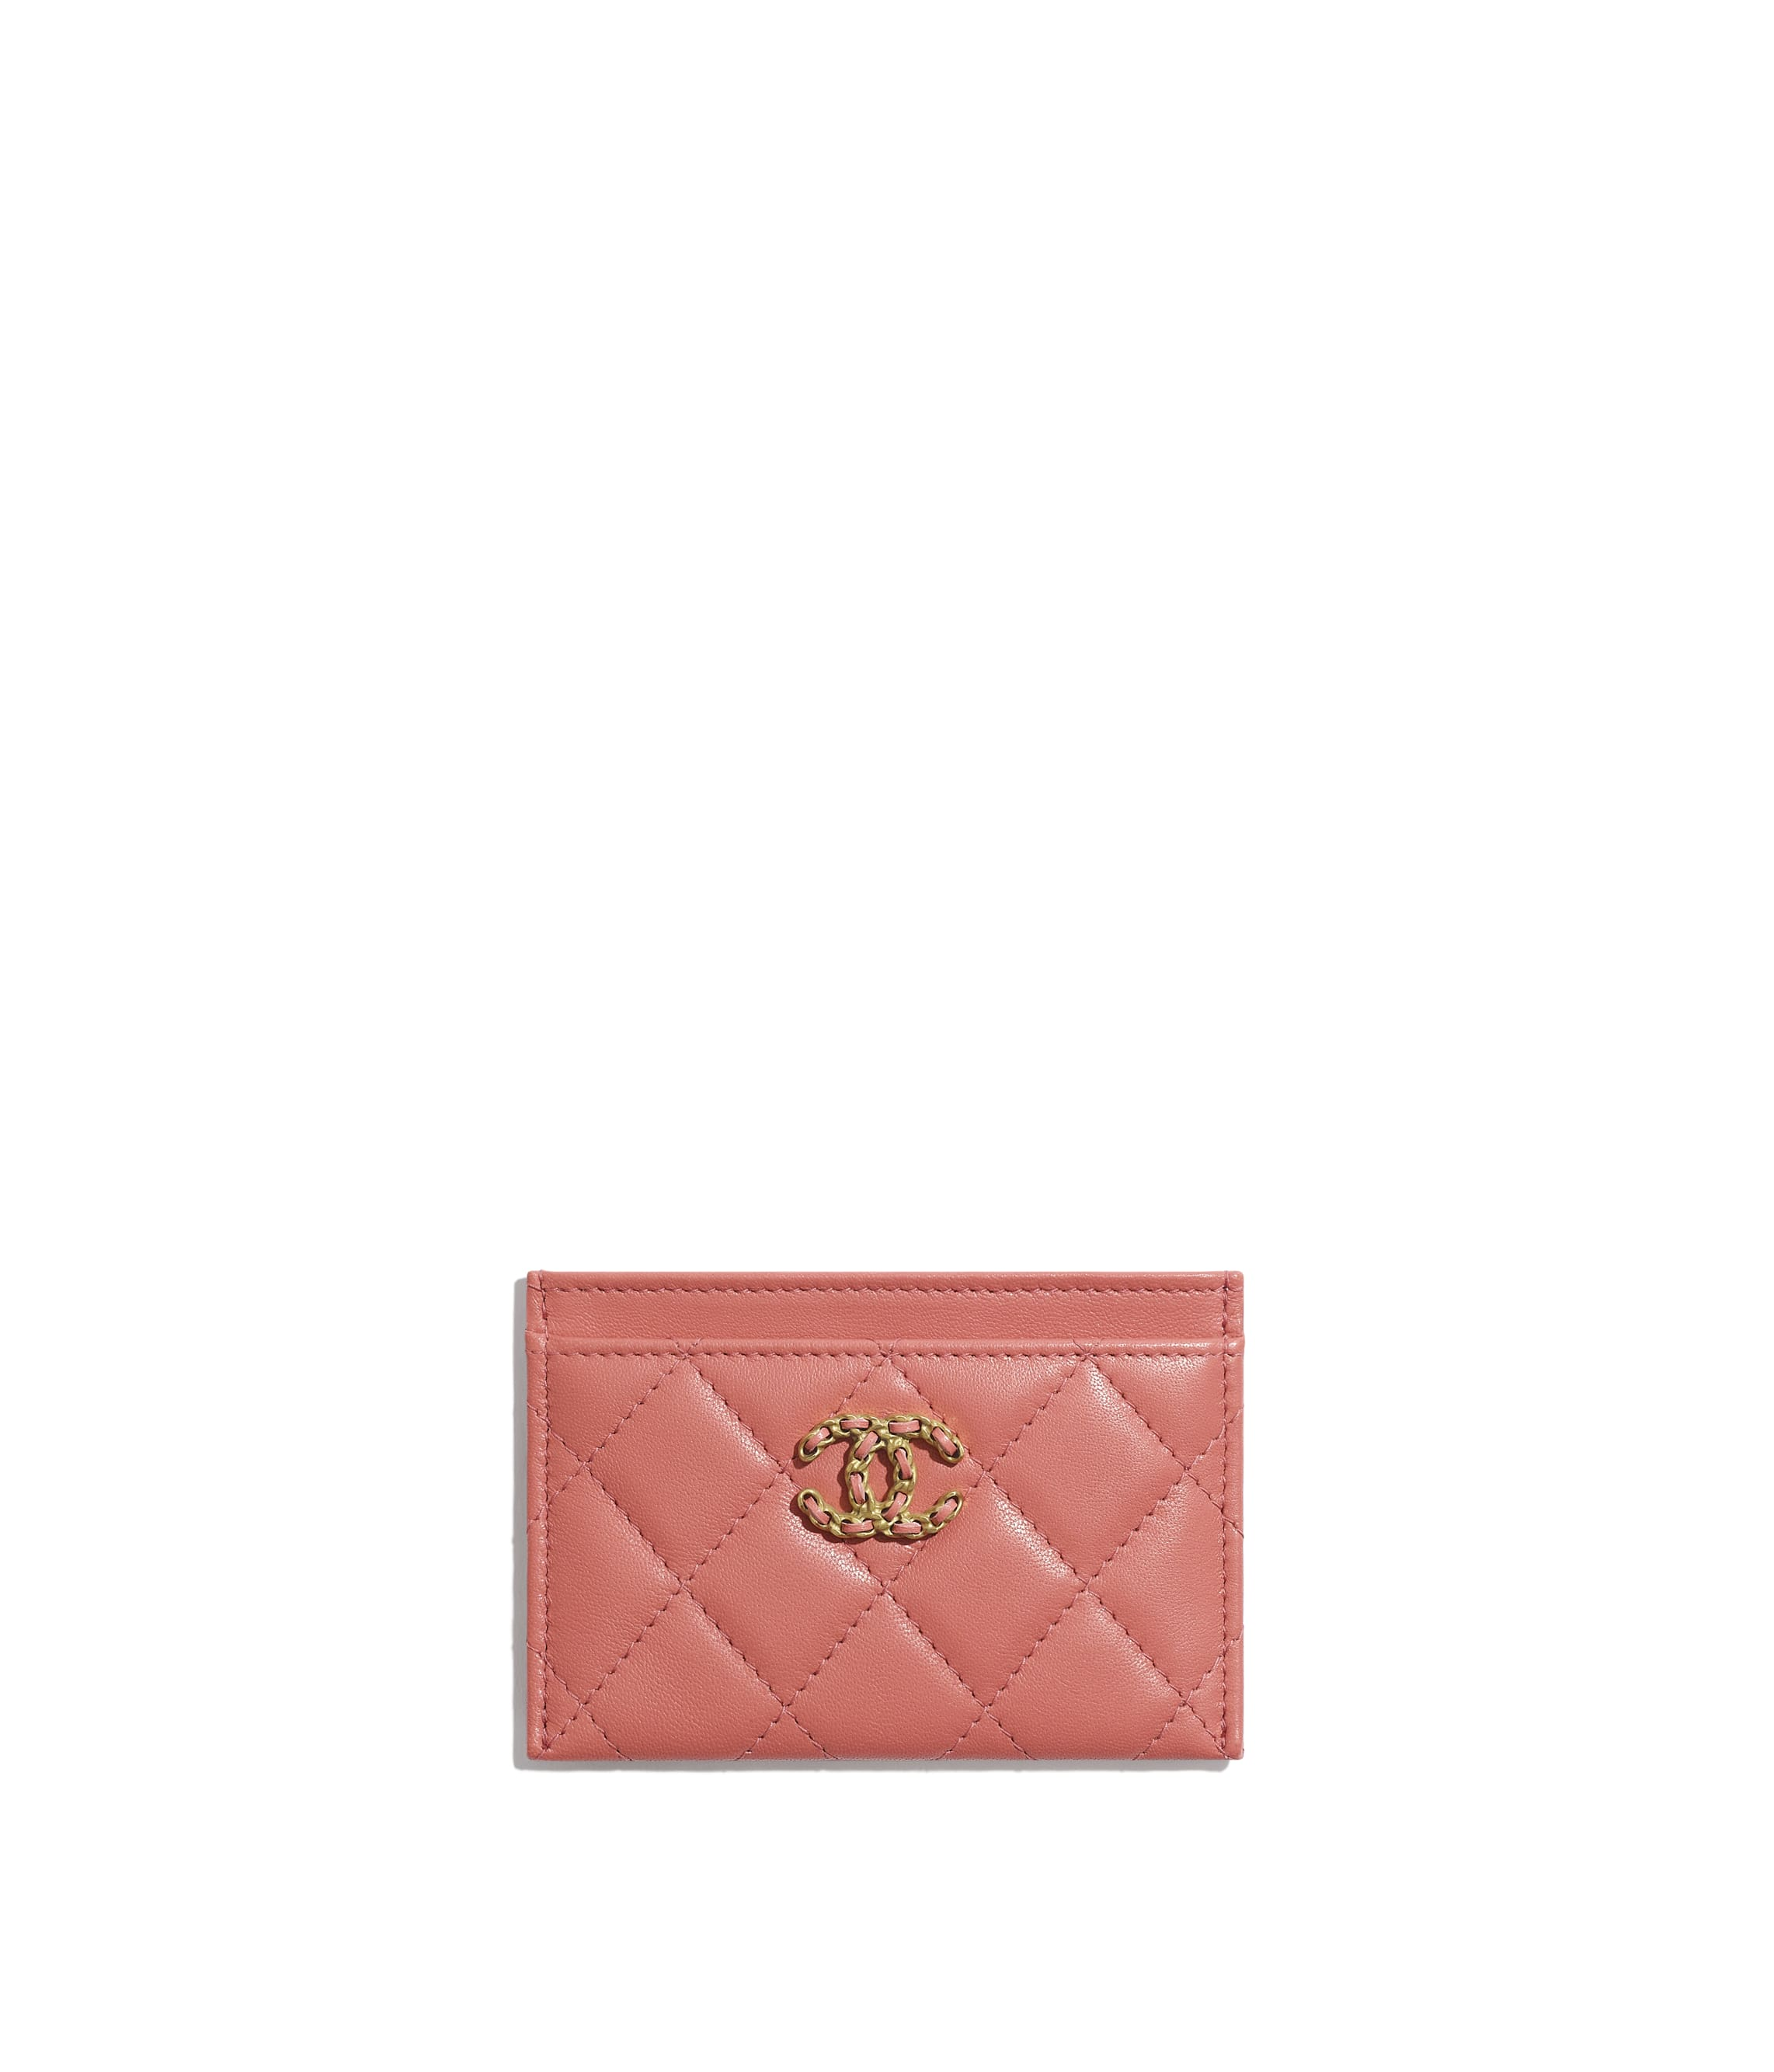 7b5aa94993 Card Holders - Small Leather Goods - CHANEL